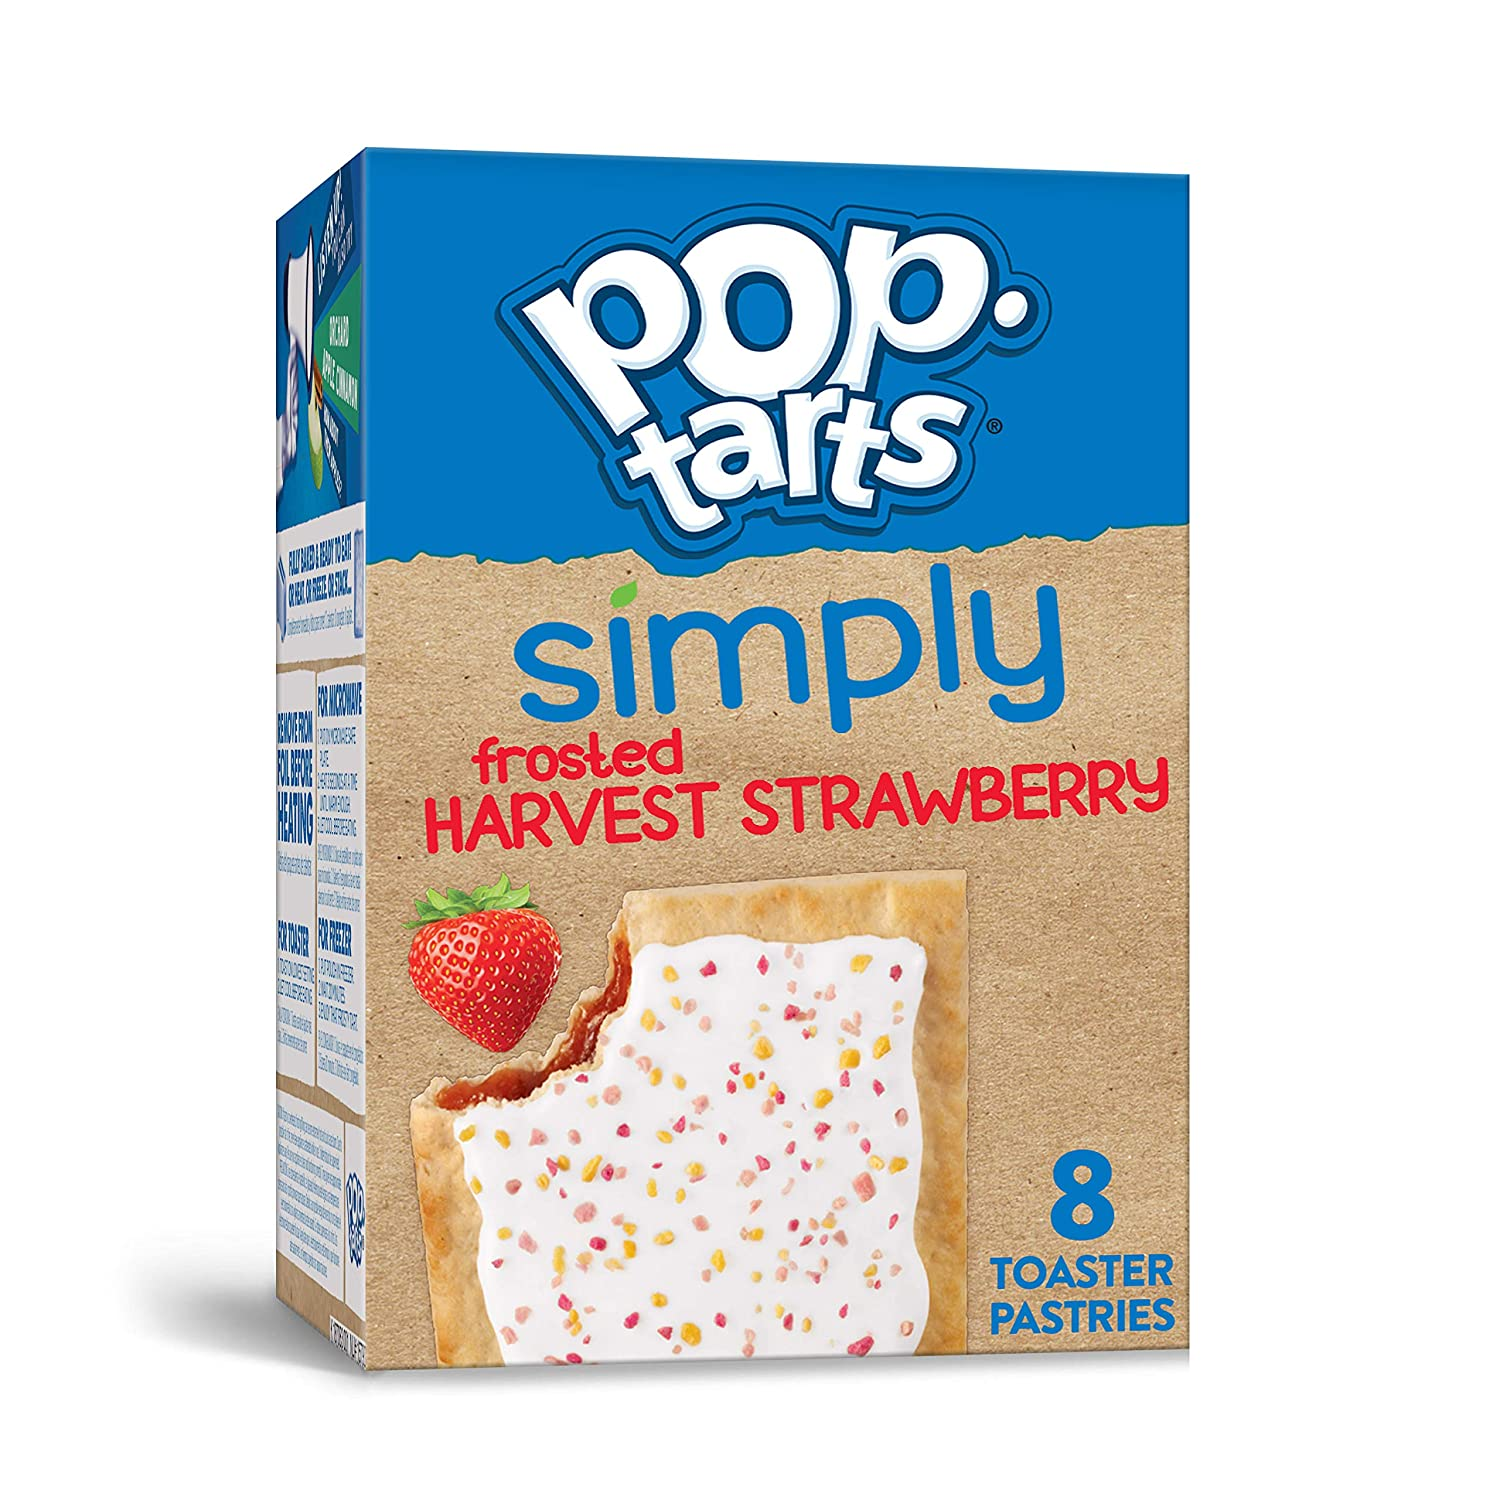 Pop-Tarts Simply Frosted Harvest Strawbery, Toaster Pastries, 13.5 Oz